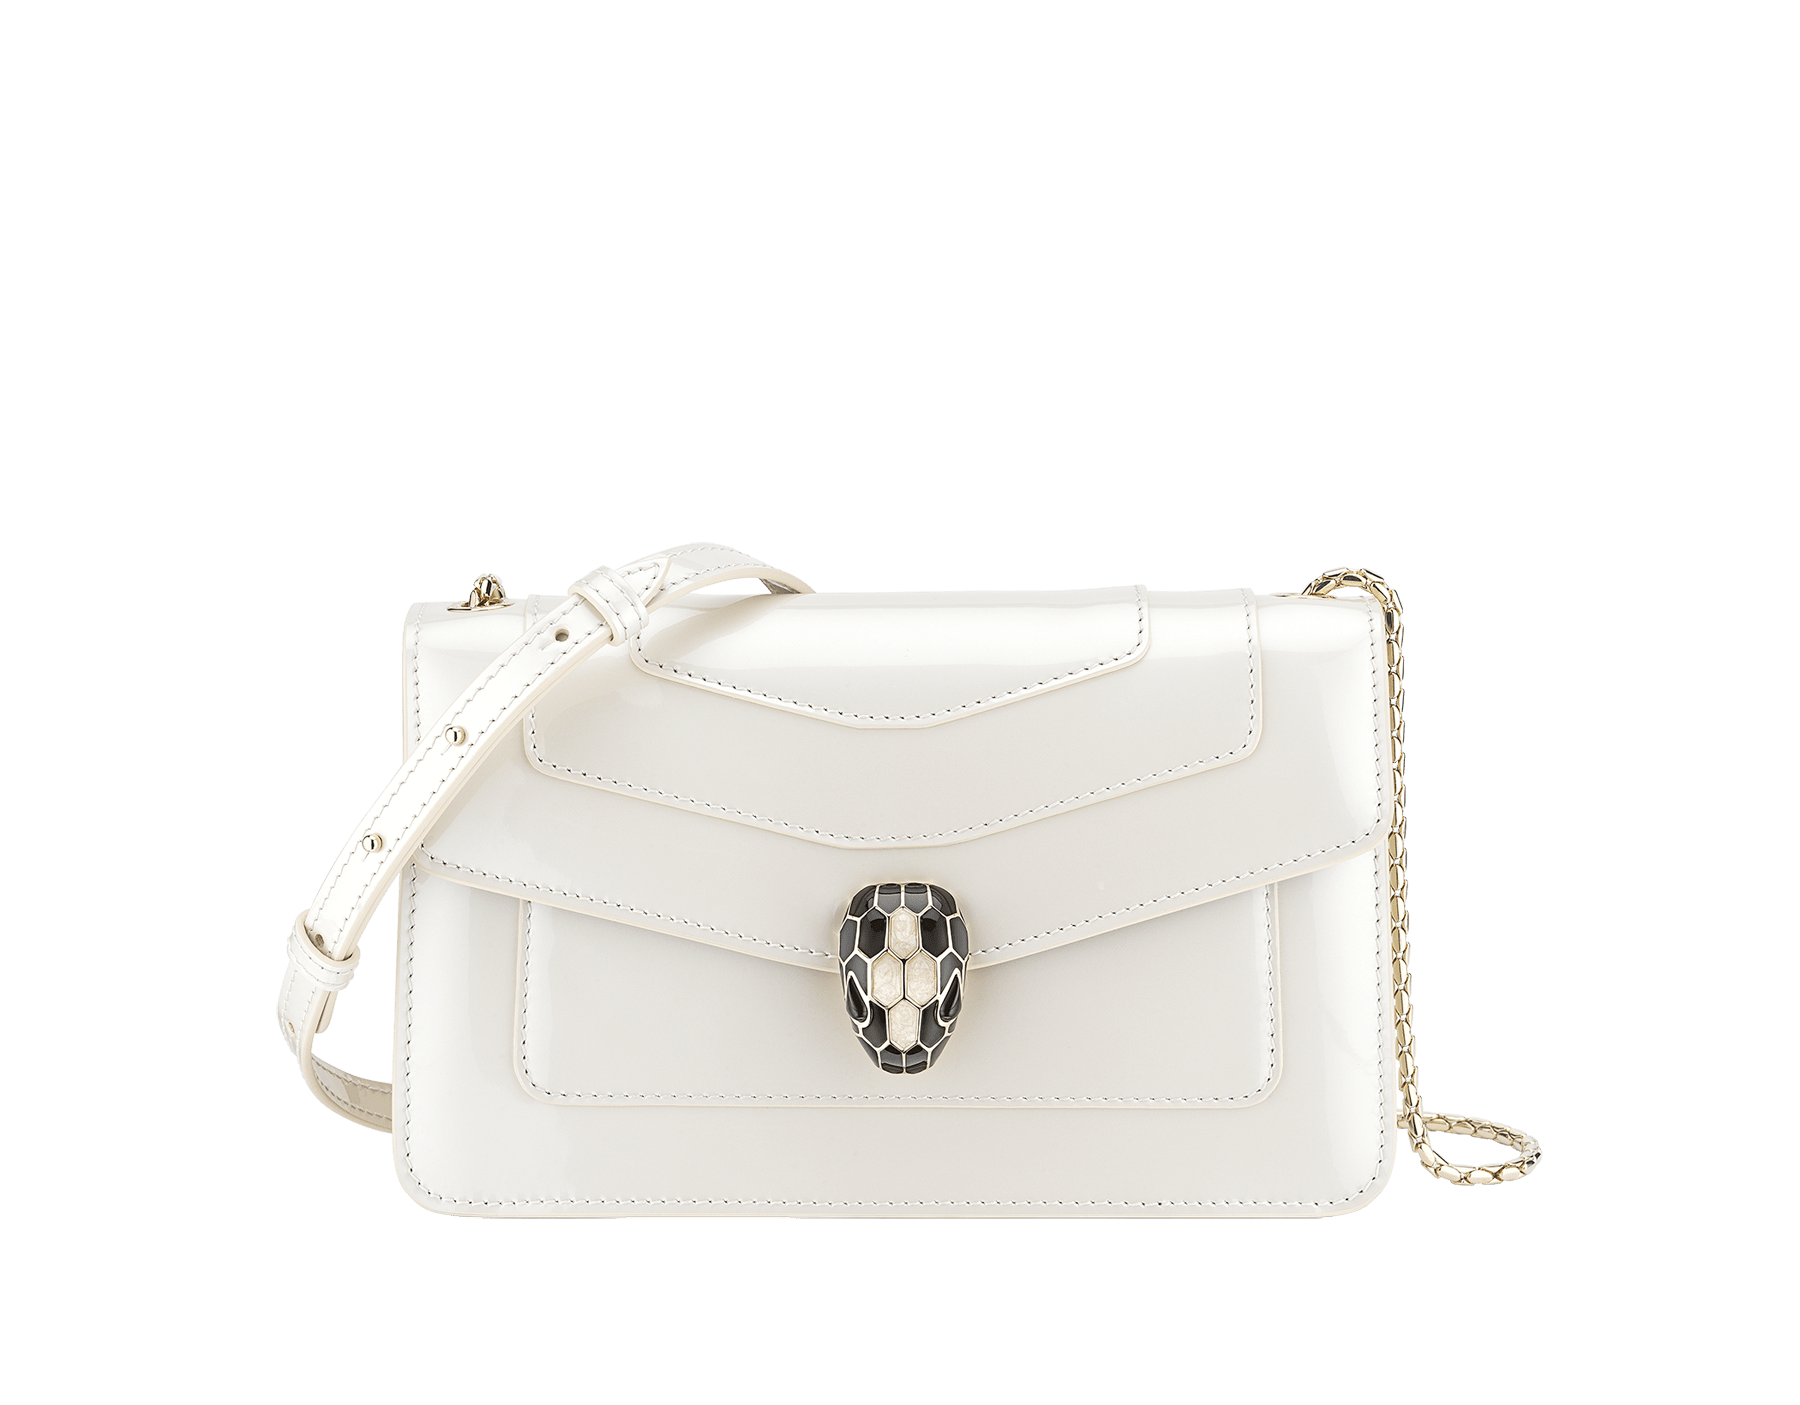 """Serpenti Forever"" crossbody bag in white agate leather with a varnished and pearled effect. Iconic snakehead closure in light gold plated brass enriched with black and pearled white agate enamel and black onyx eyes 290107 image 1"